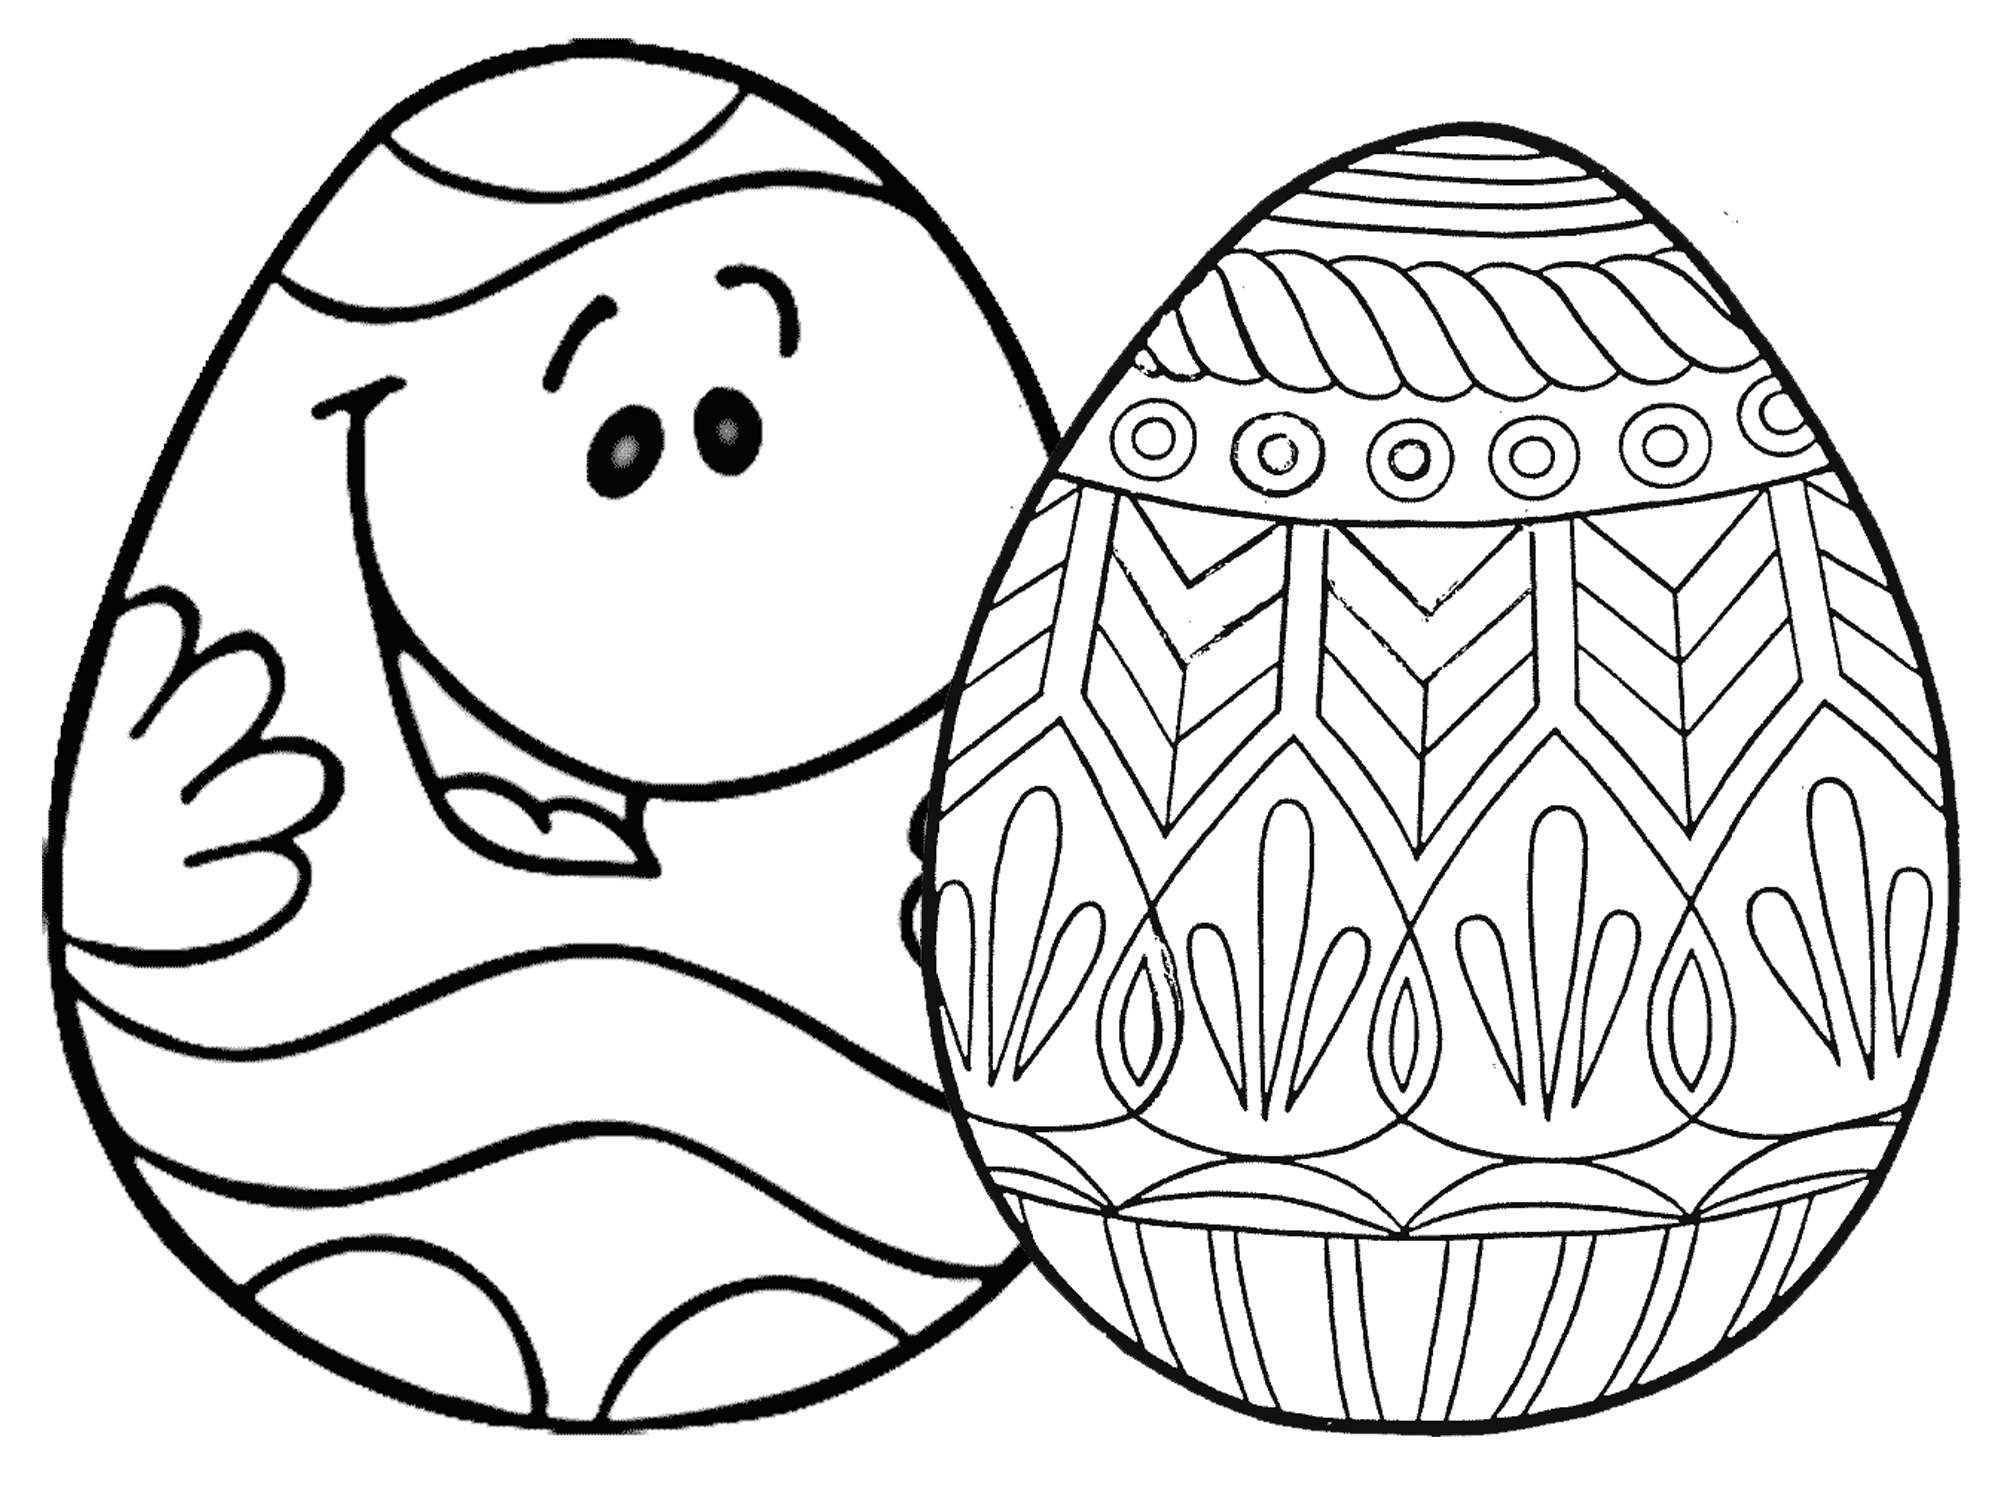 2000x1500 Beautiful Decoration Easter Egg Coloring Page Free Printable